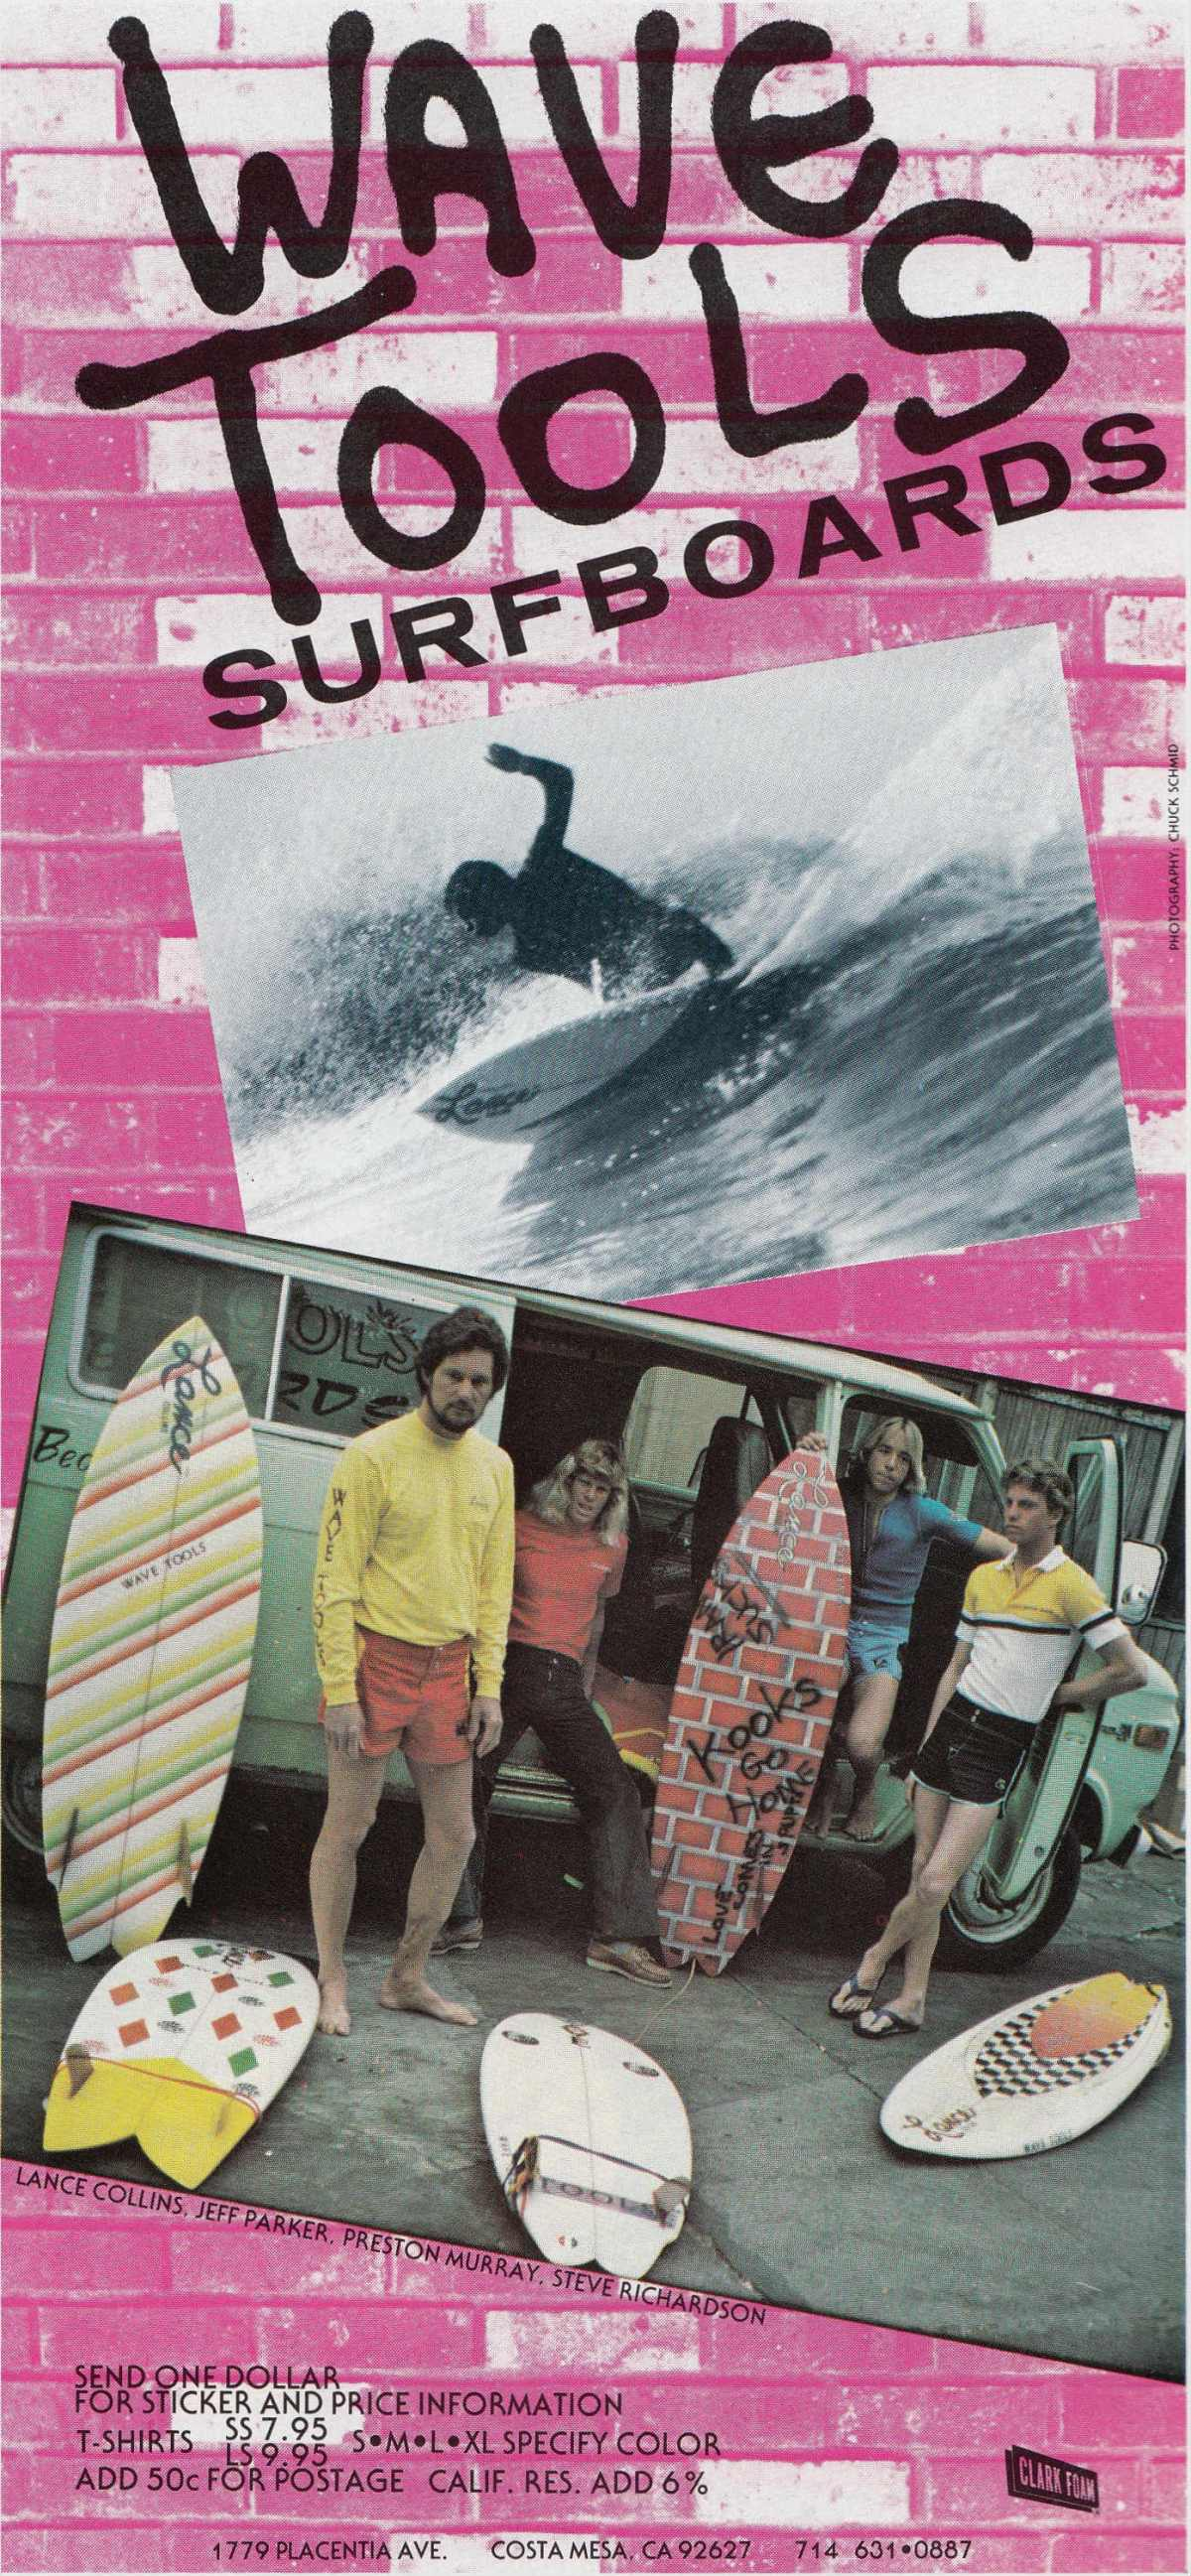 Vintage Wave Tools Surfboards Ad: Sagas of Shred